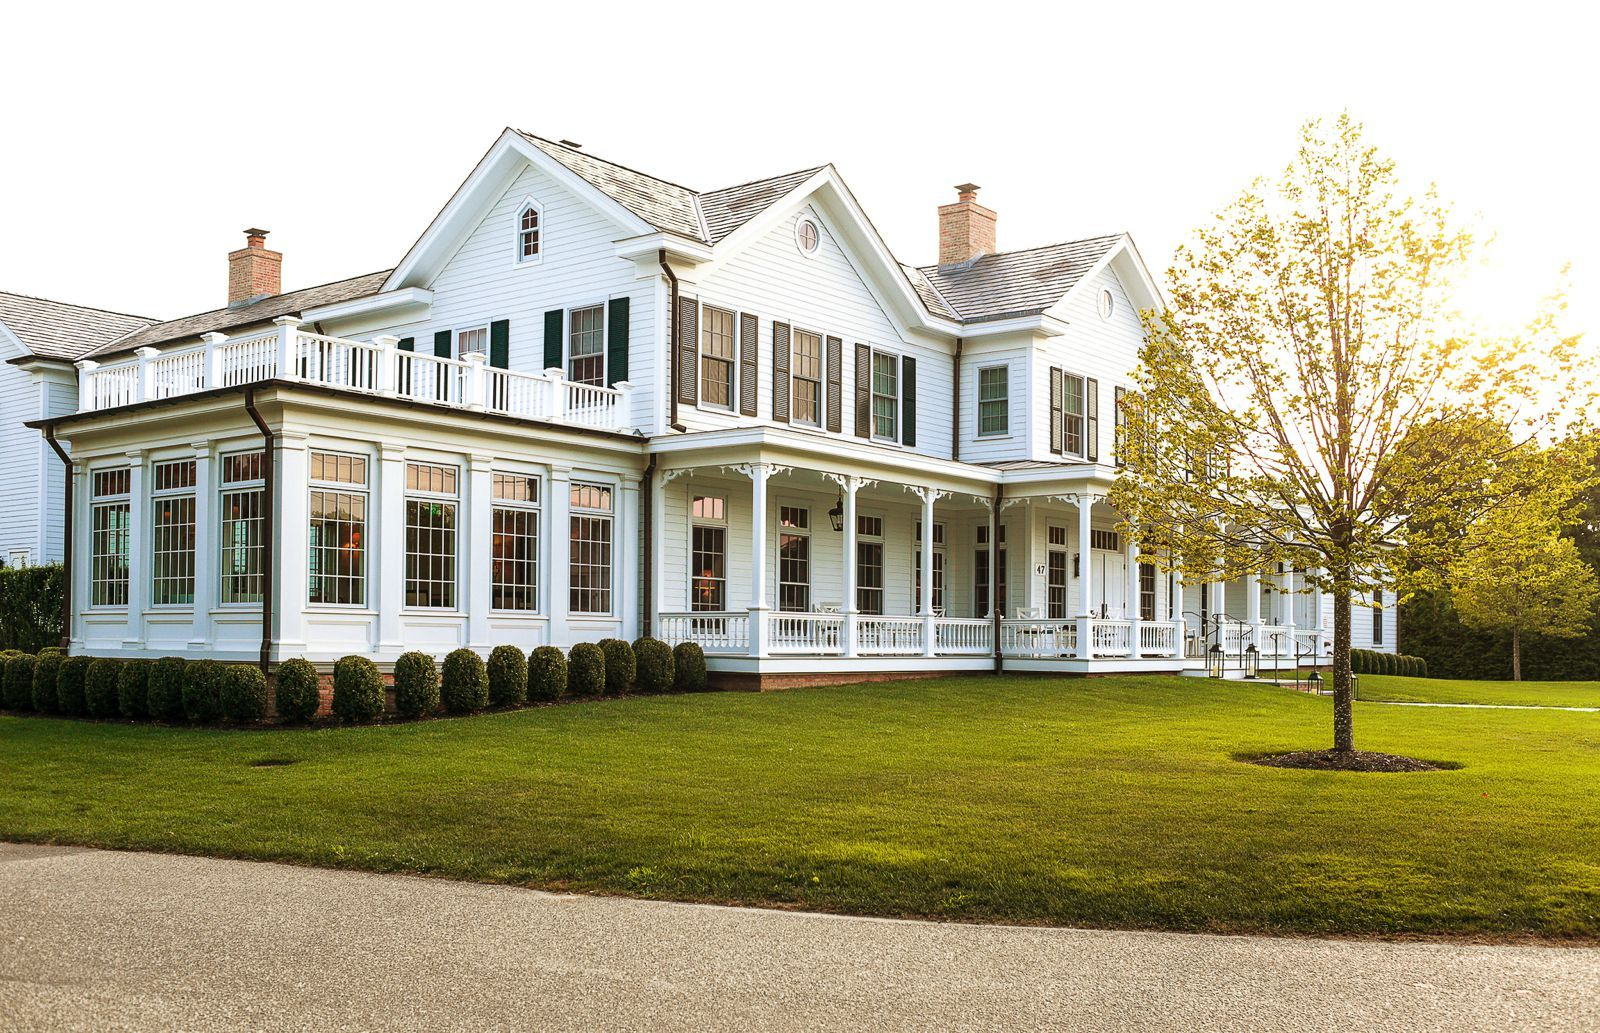 11 amazing things to do in the hamptons with images